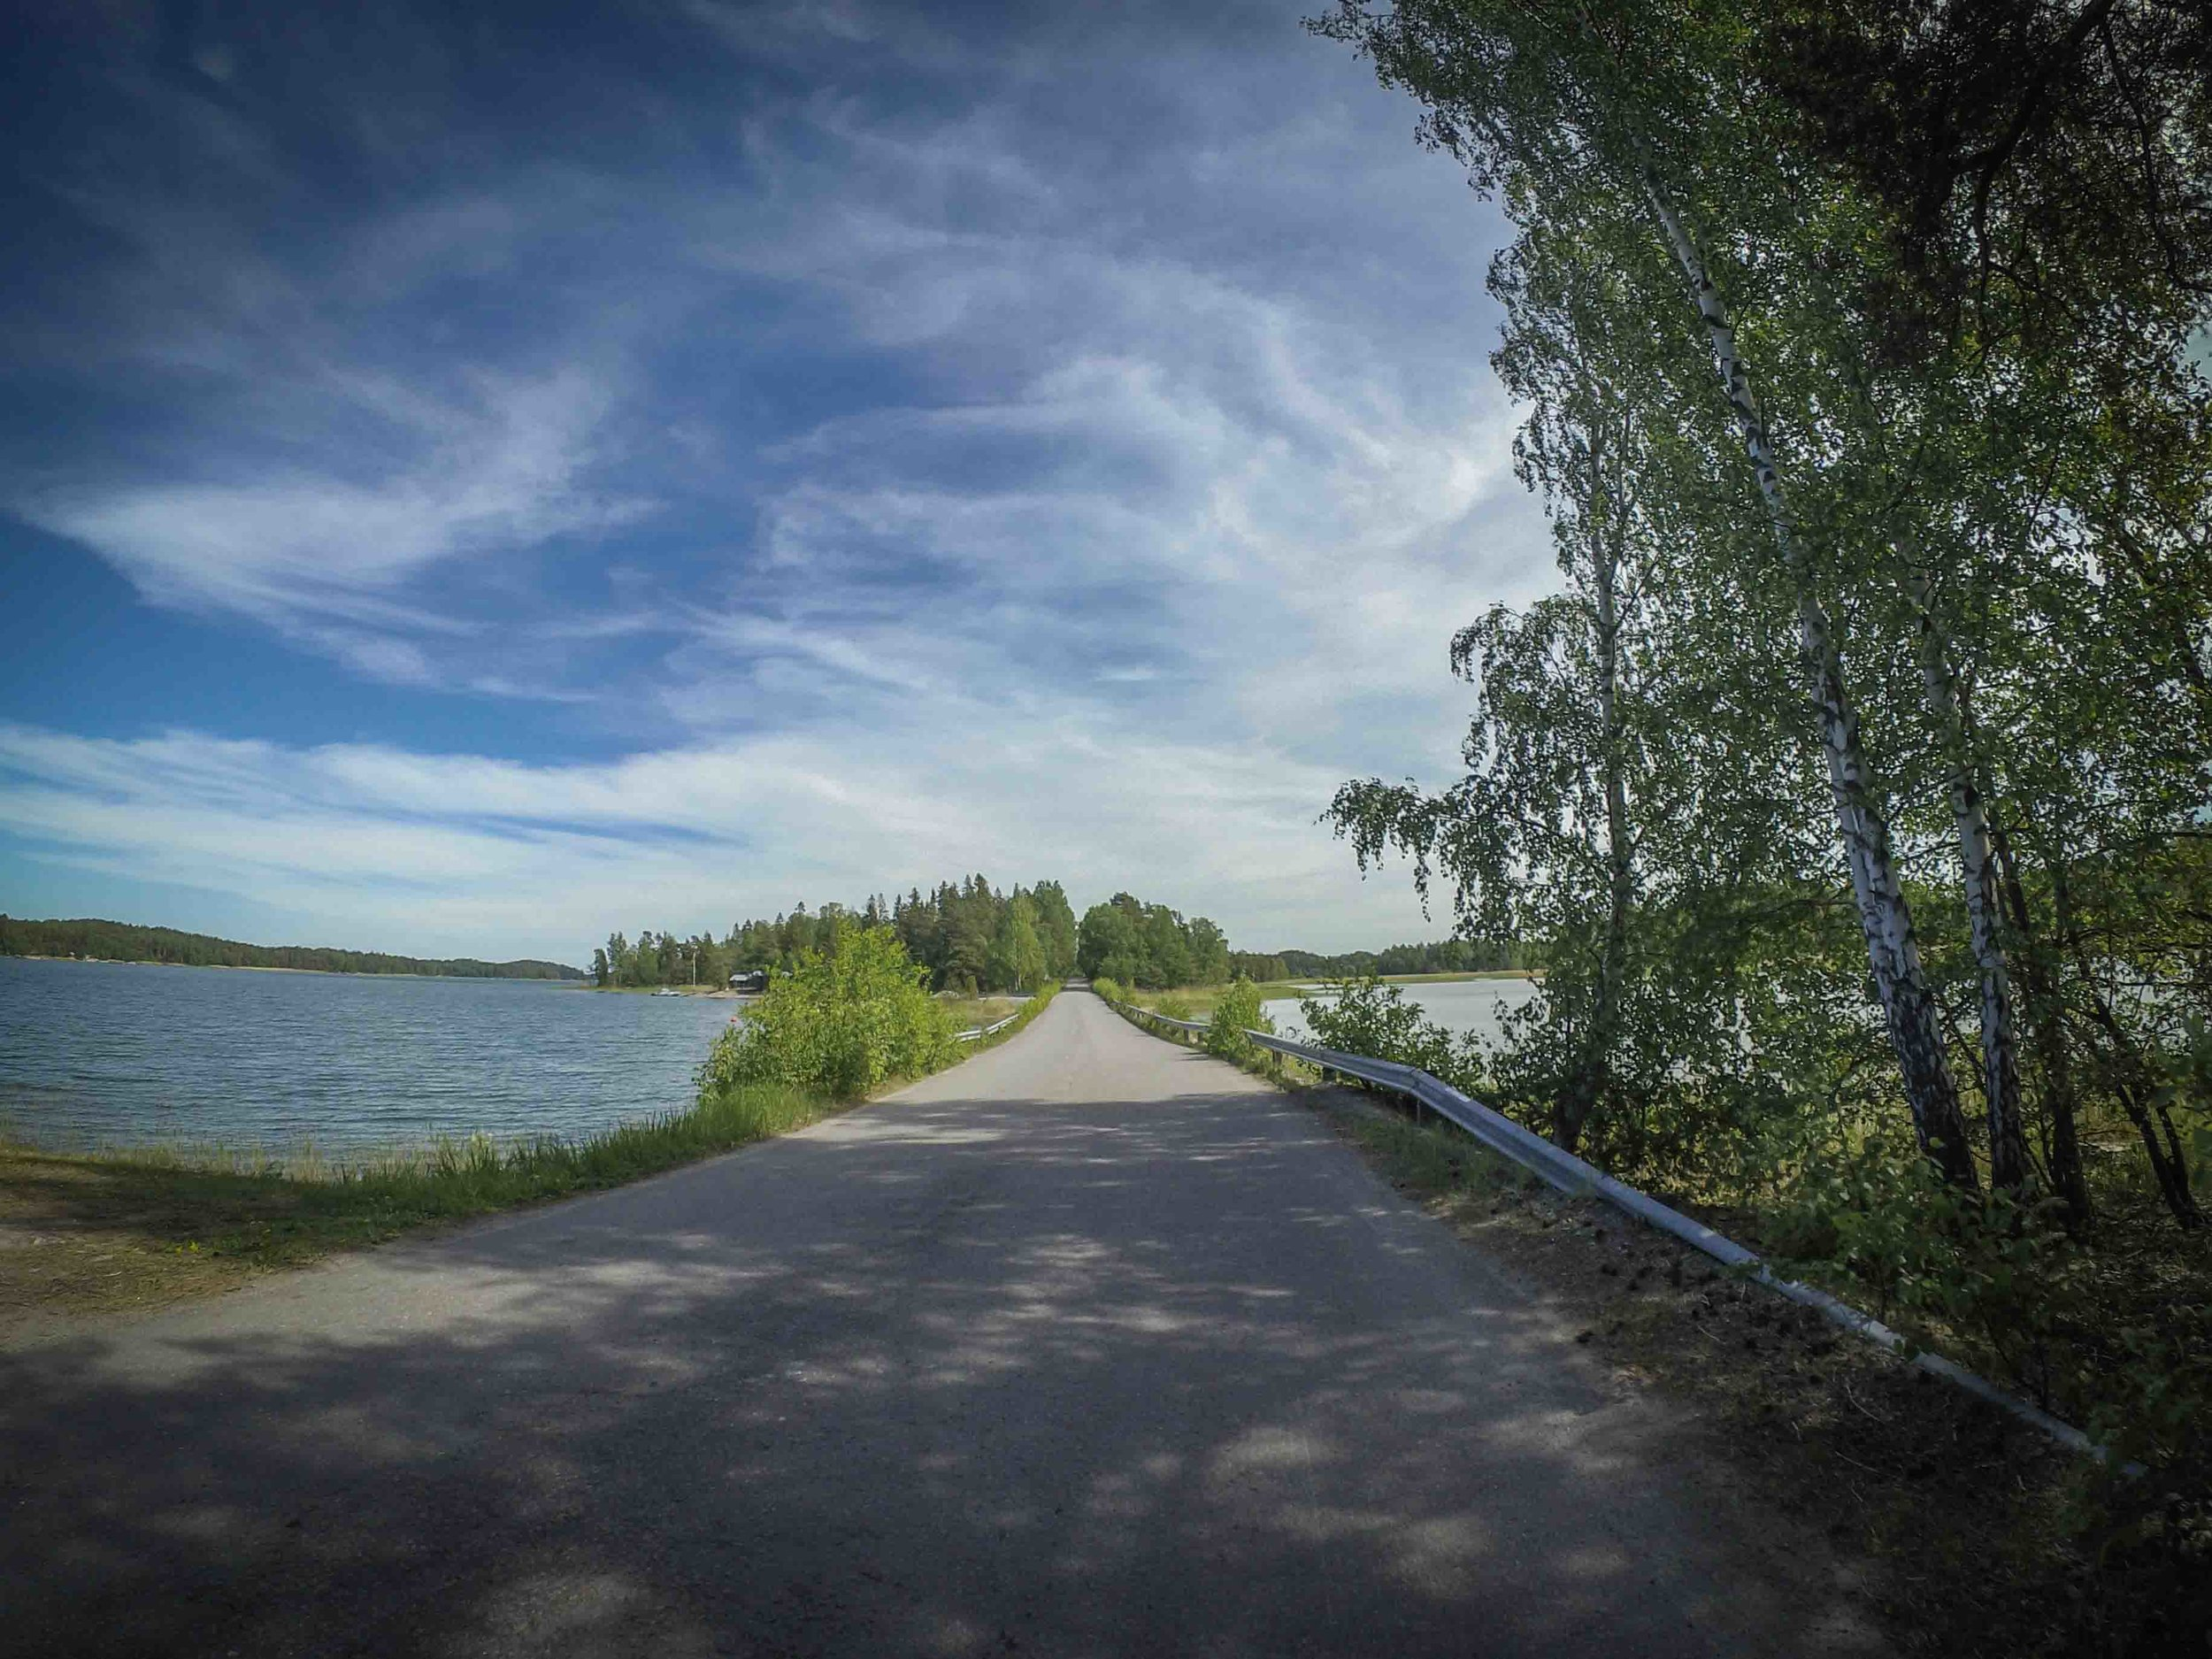 The most beautiful part of Finland - Archipelago